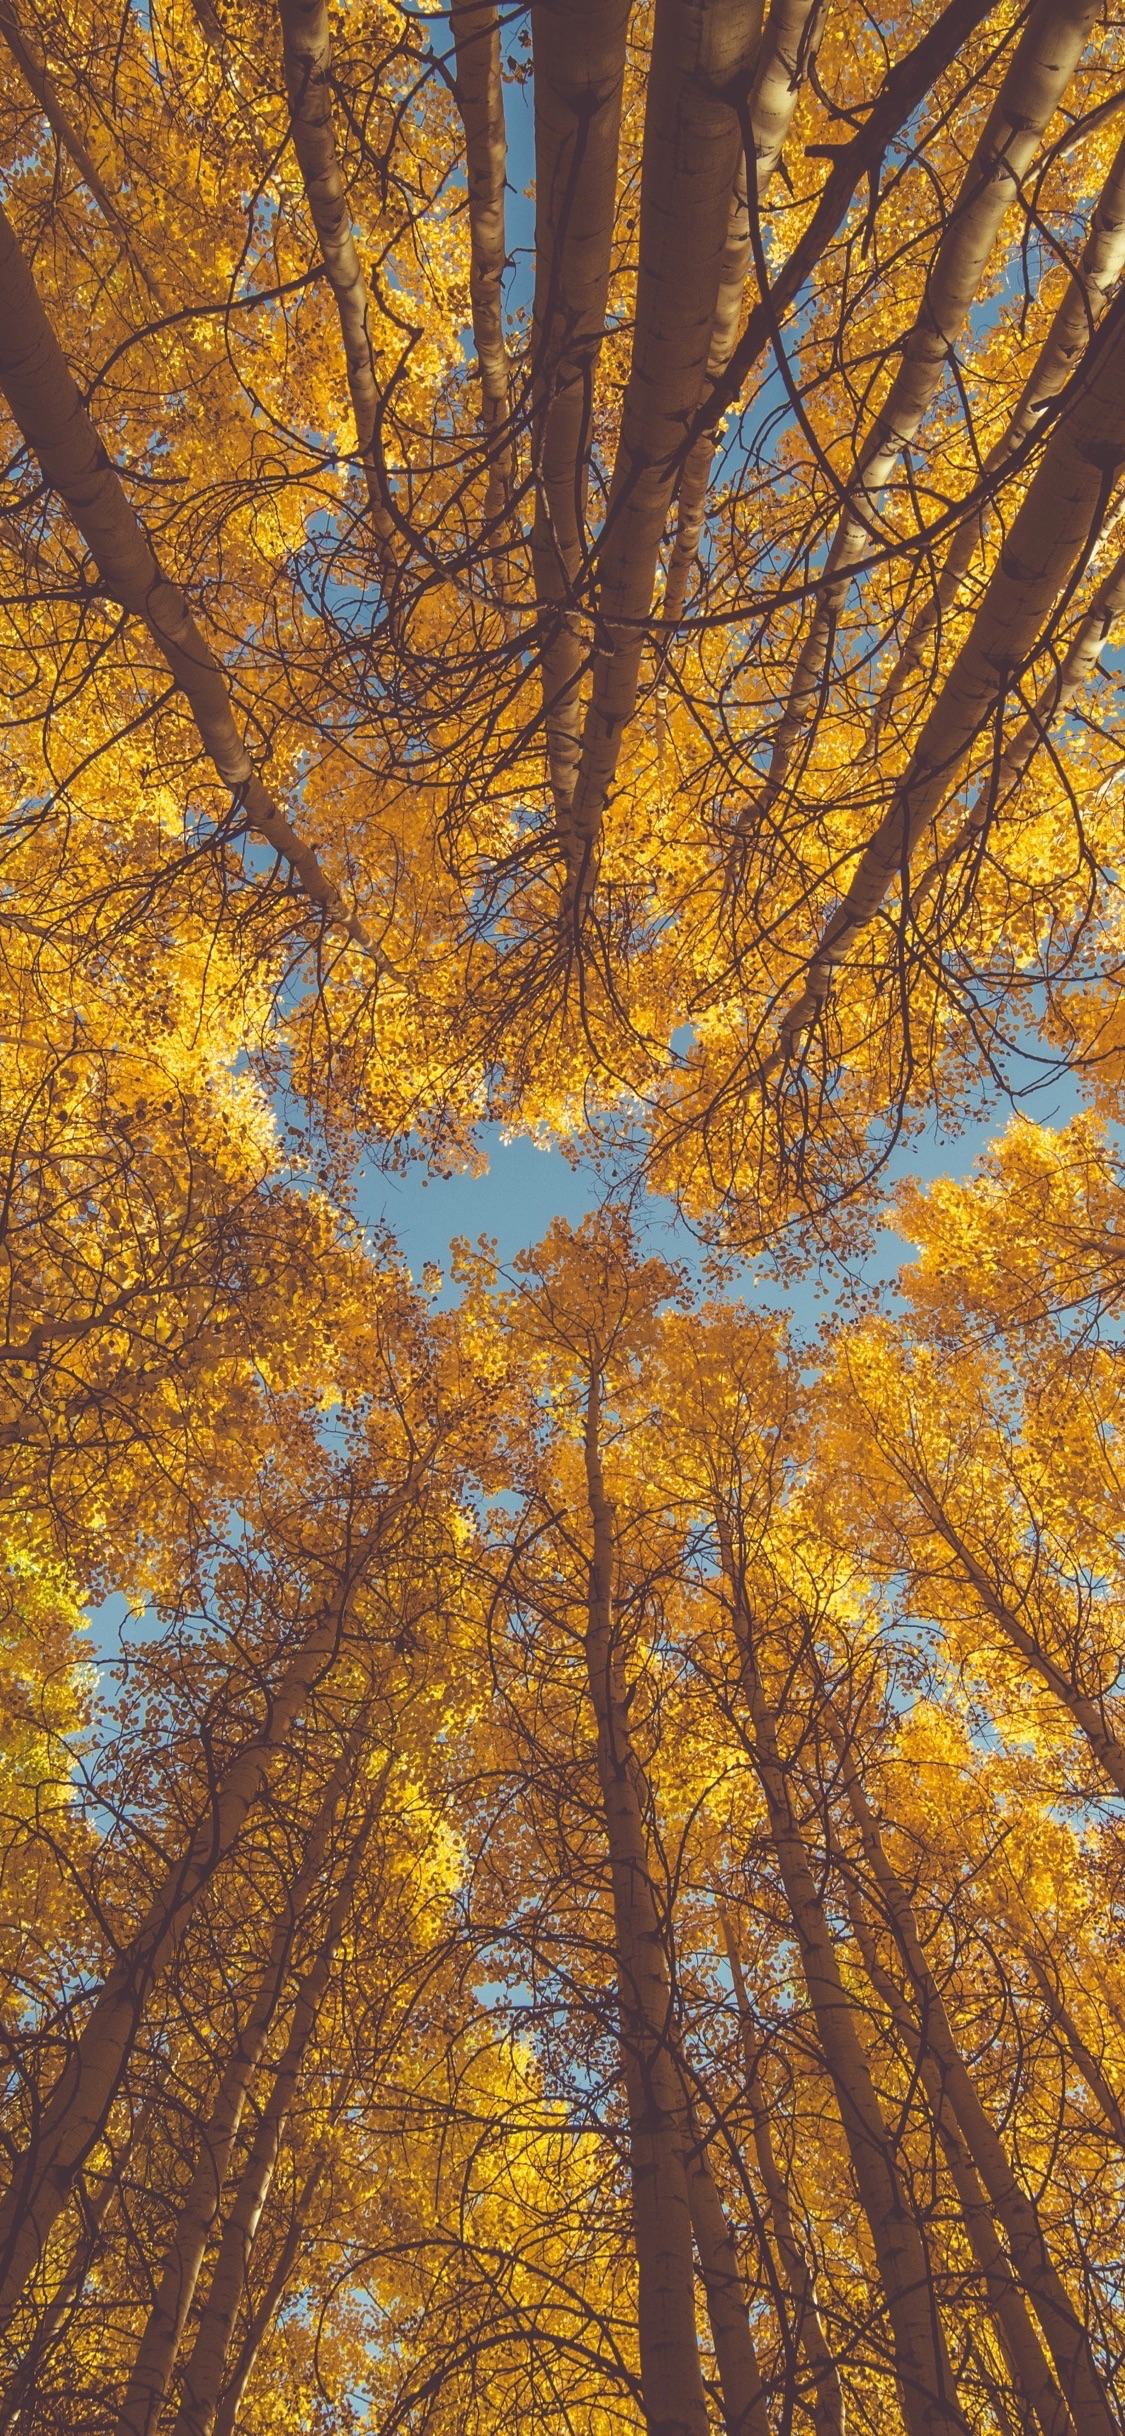 Wallpaper Weekends Autumn Foliage Iphone Wallpapers